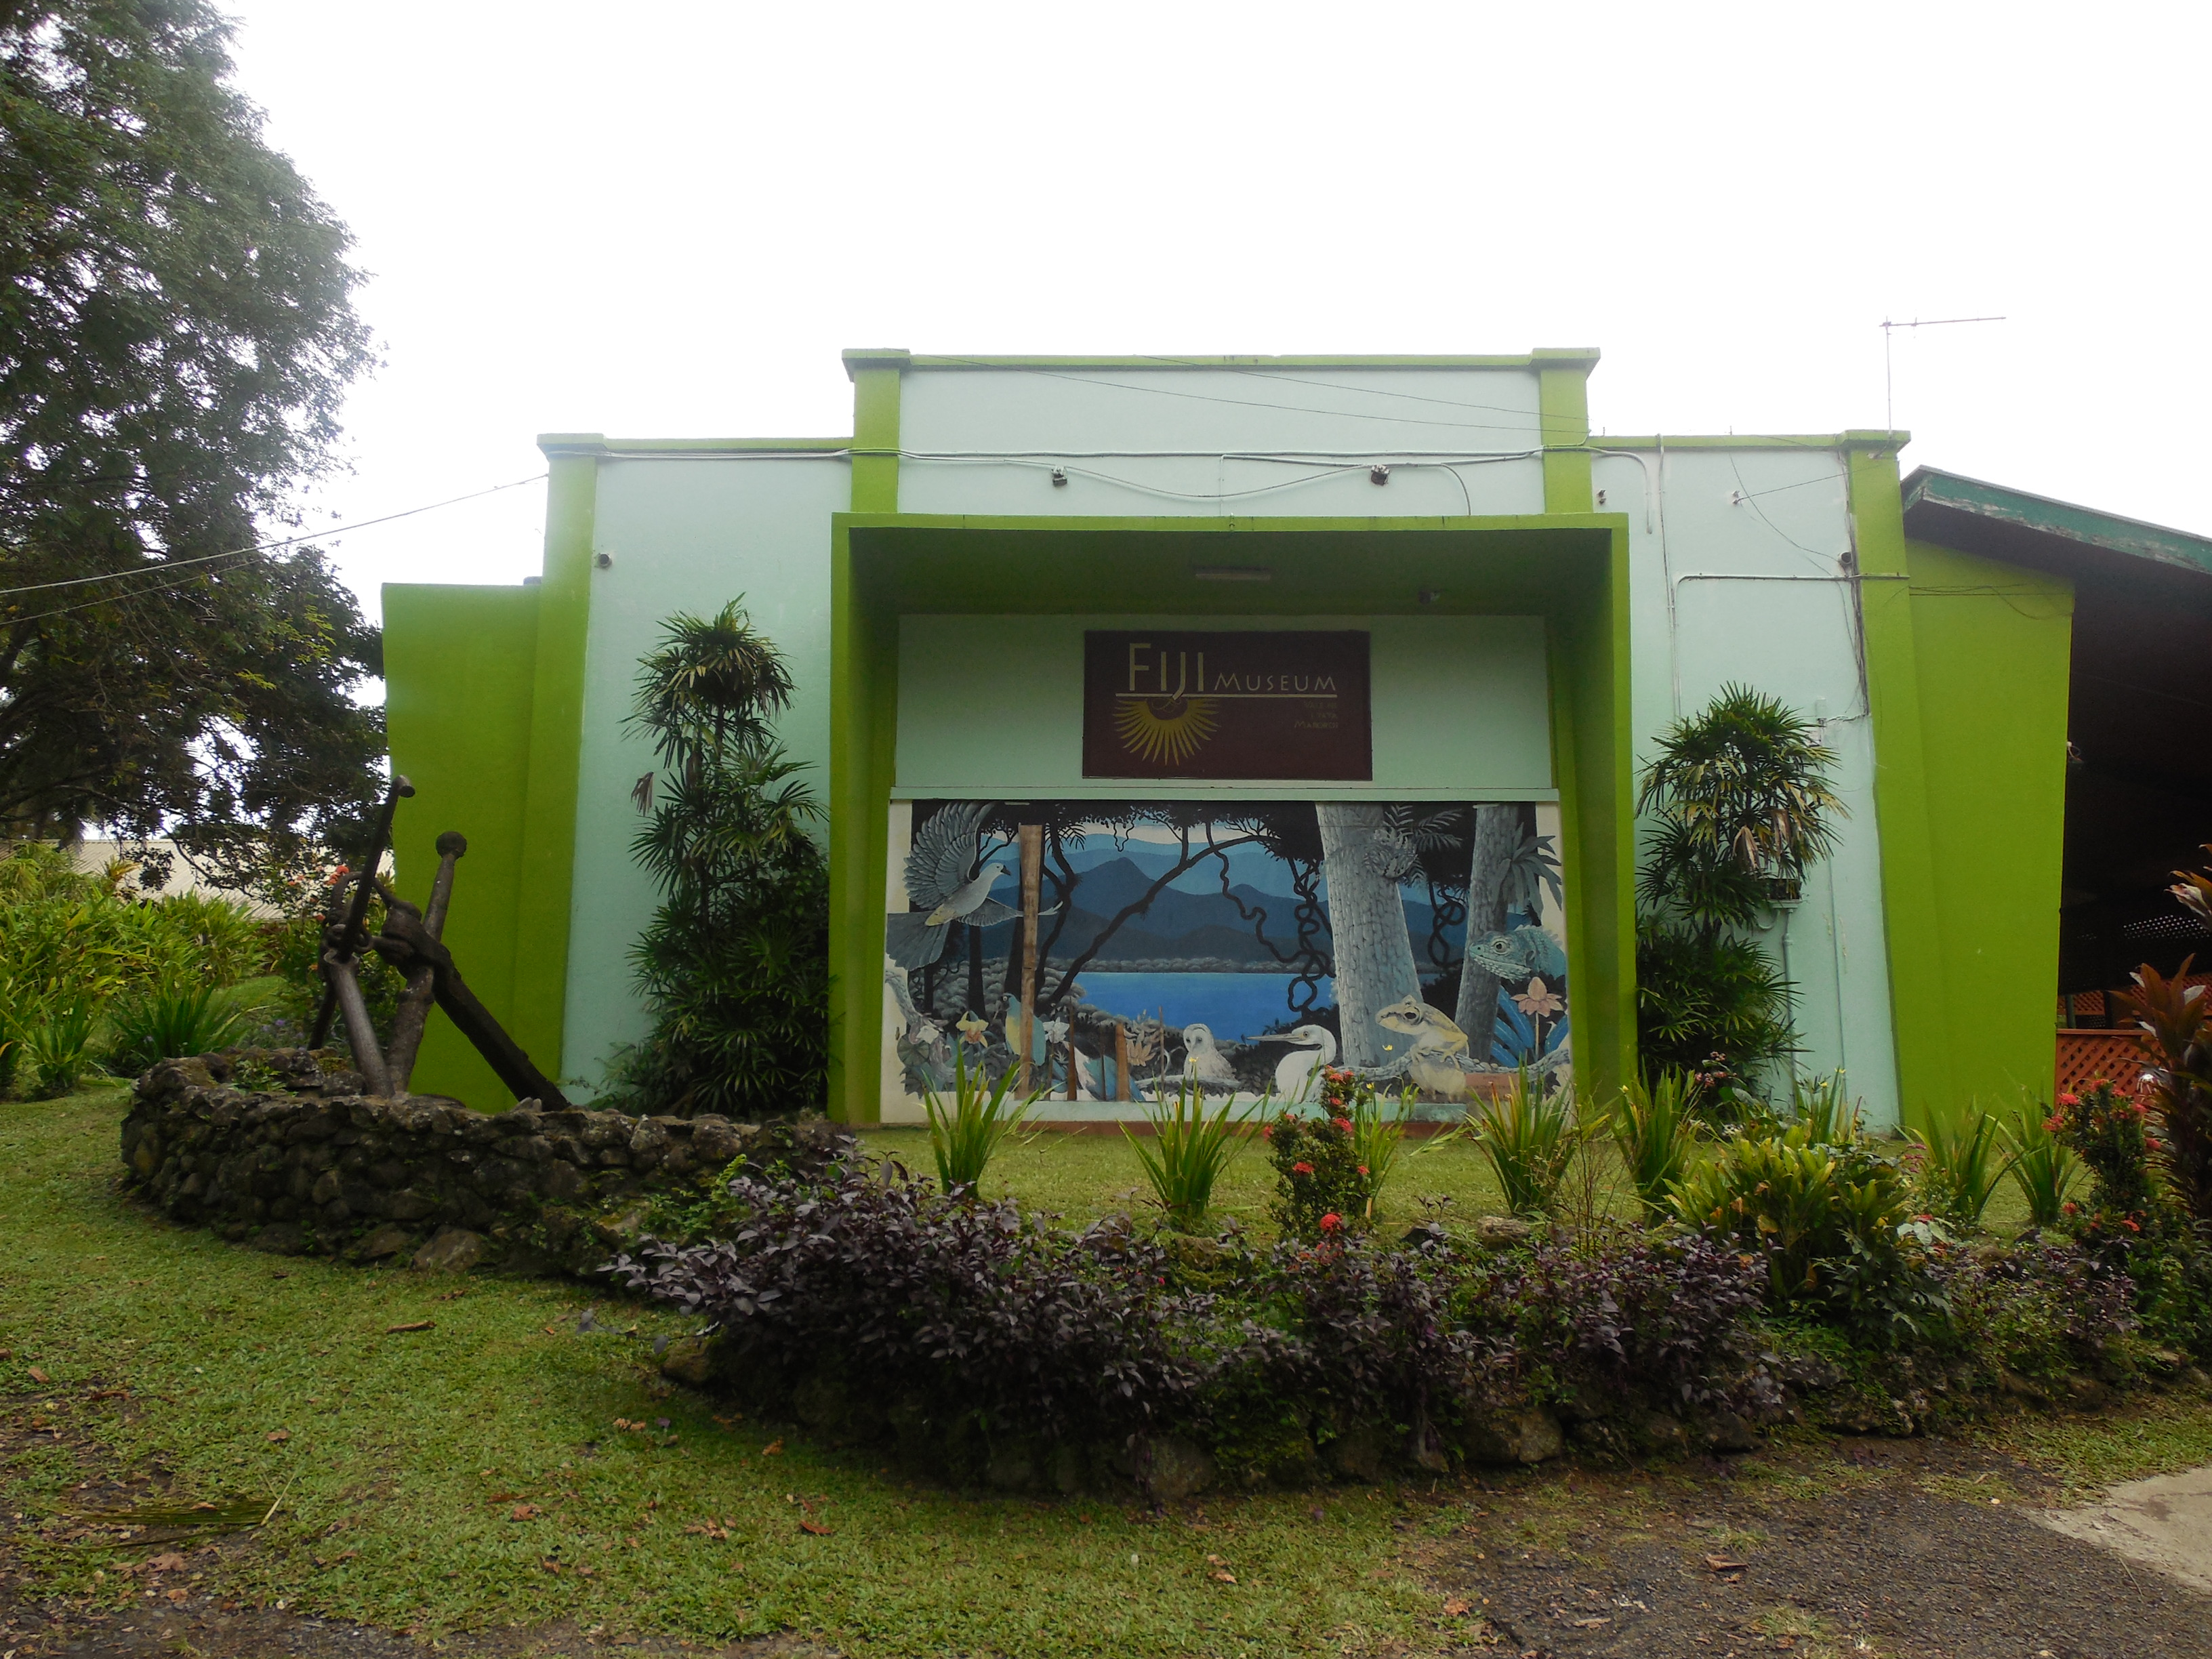 Fiji Museum Suva, The Fiji Museum | She Is Going Places